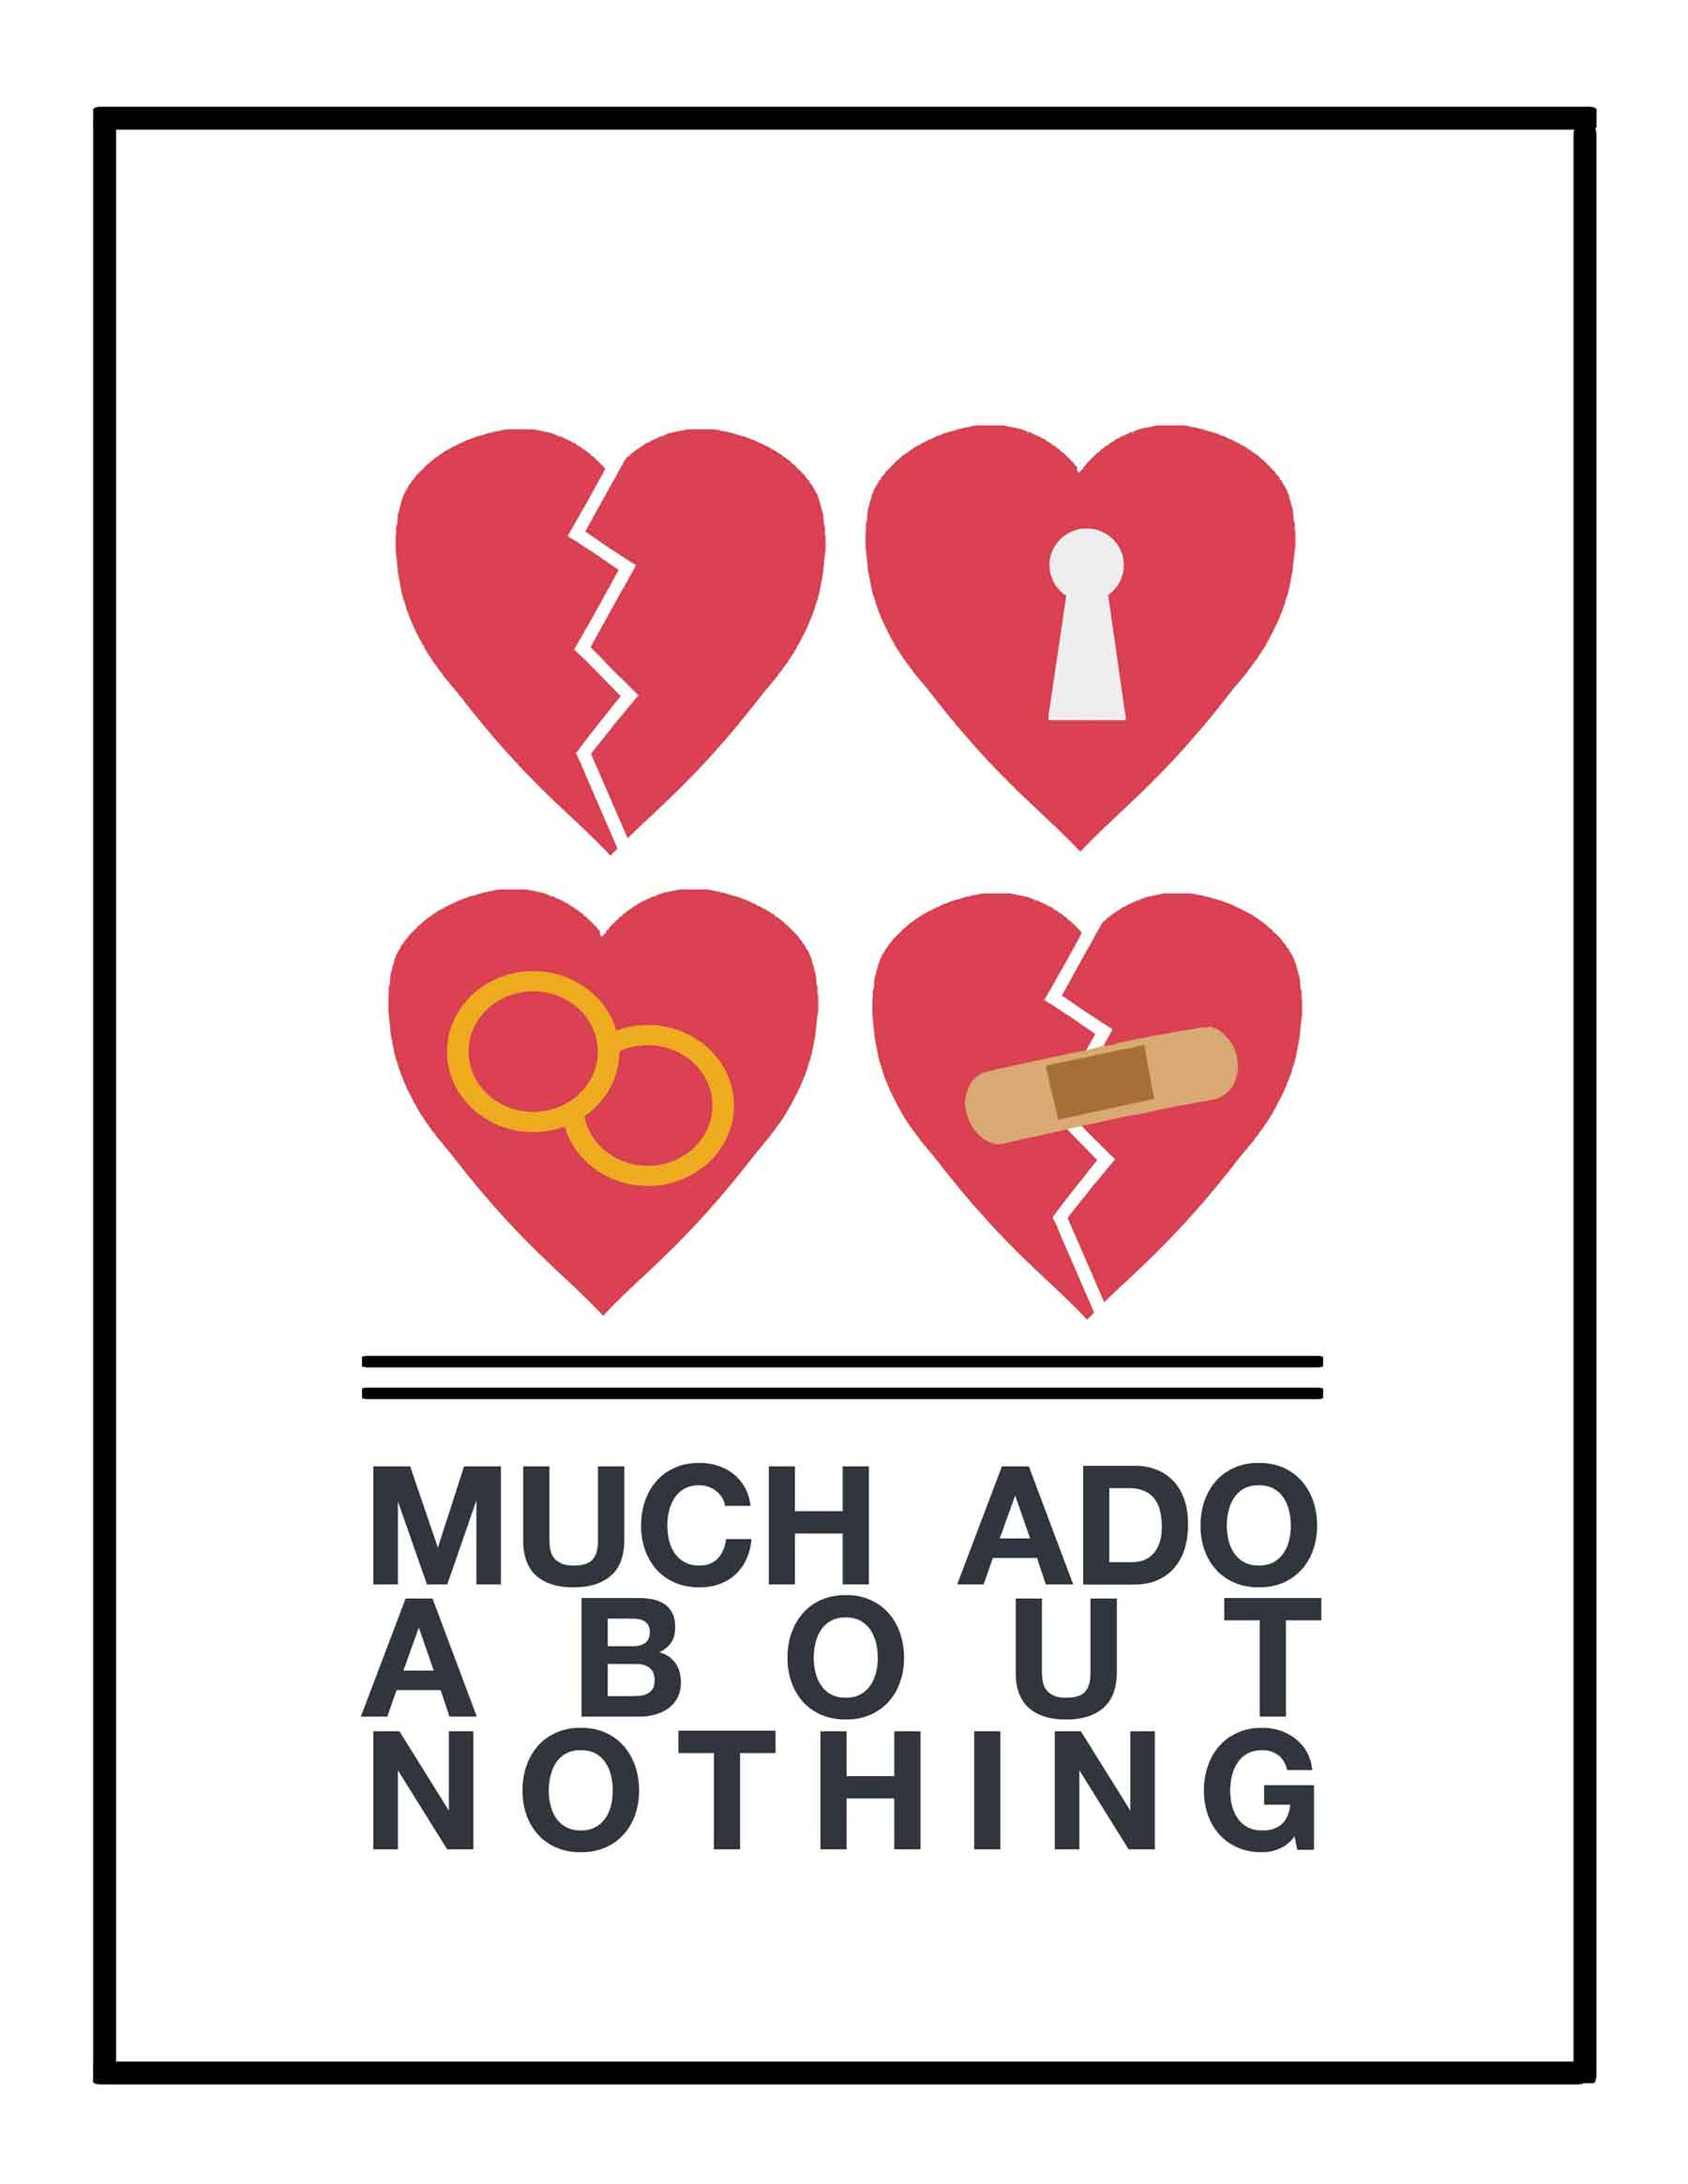 Much Ado About Nothing performed by the Shakespeare at Winedale Summer Class - Season Finale & Reception